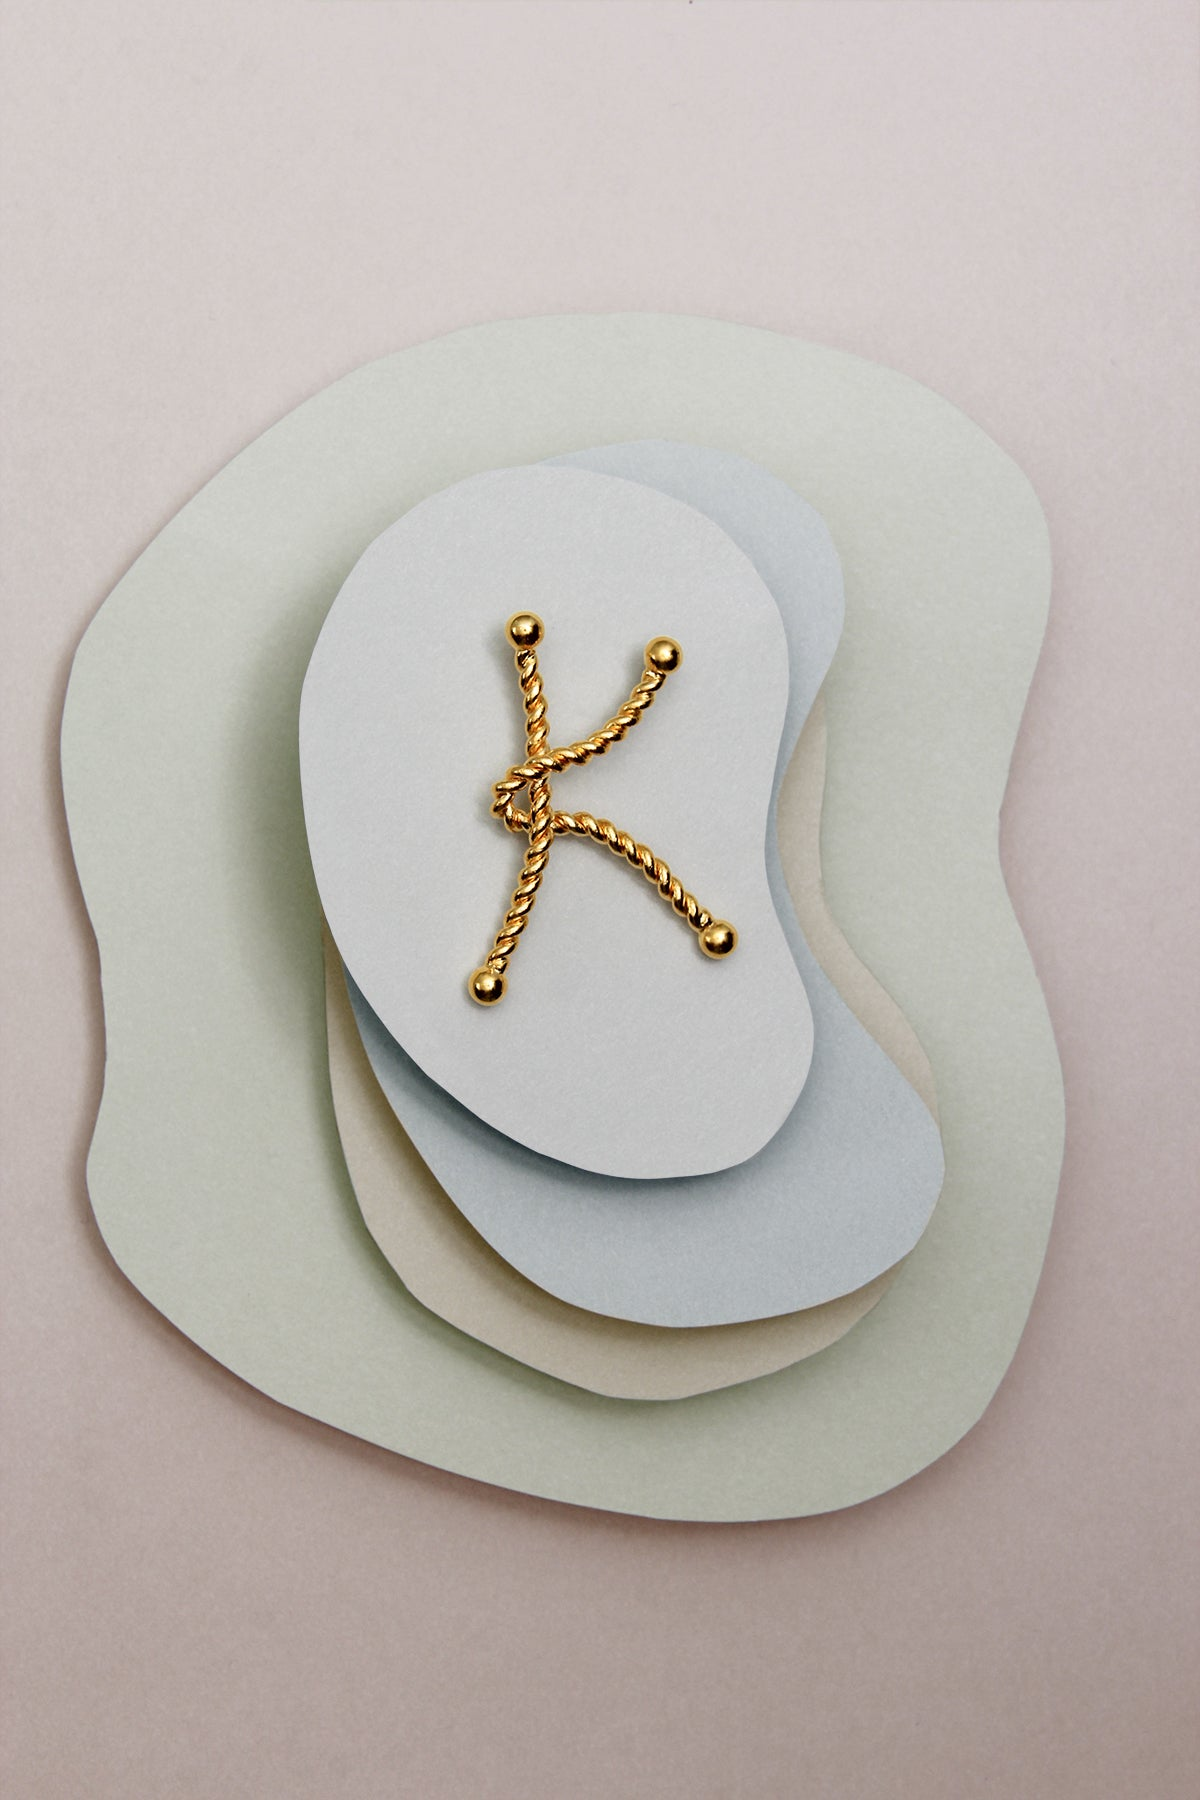 THE INITIAL K NECKLACE